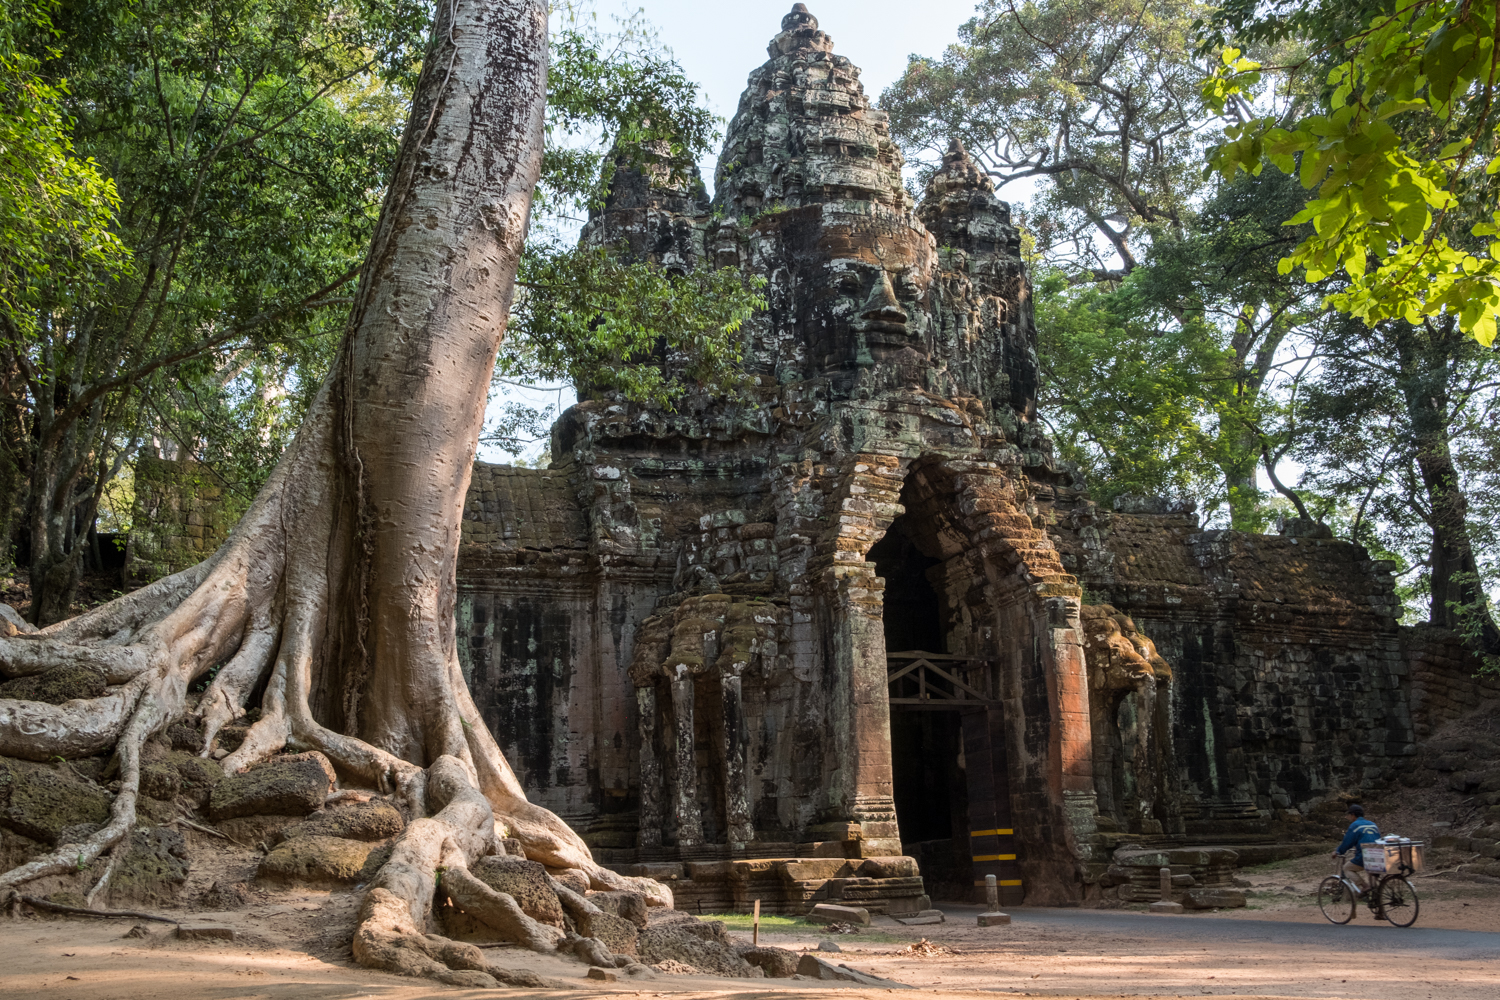 A cyclist rides through the majestic scenery and entrance gate to the Angkor temple complex.